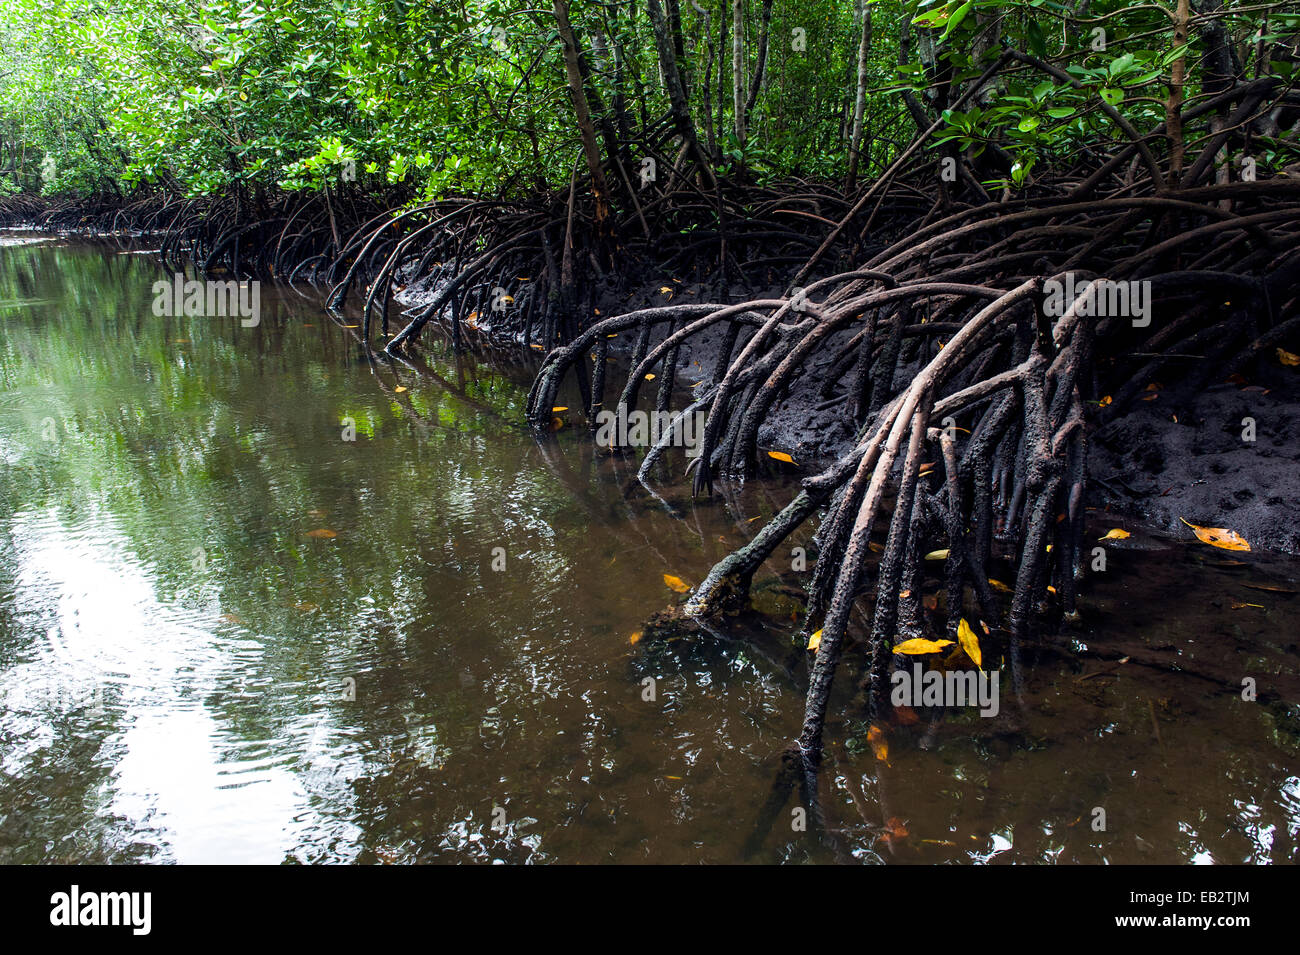 Mangrove tree roots crowd a tidal river that drains the flooded swamp forest at low tide. - Stock Image